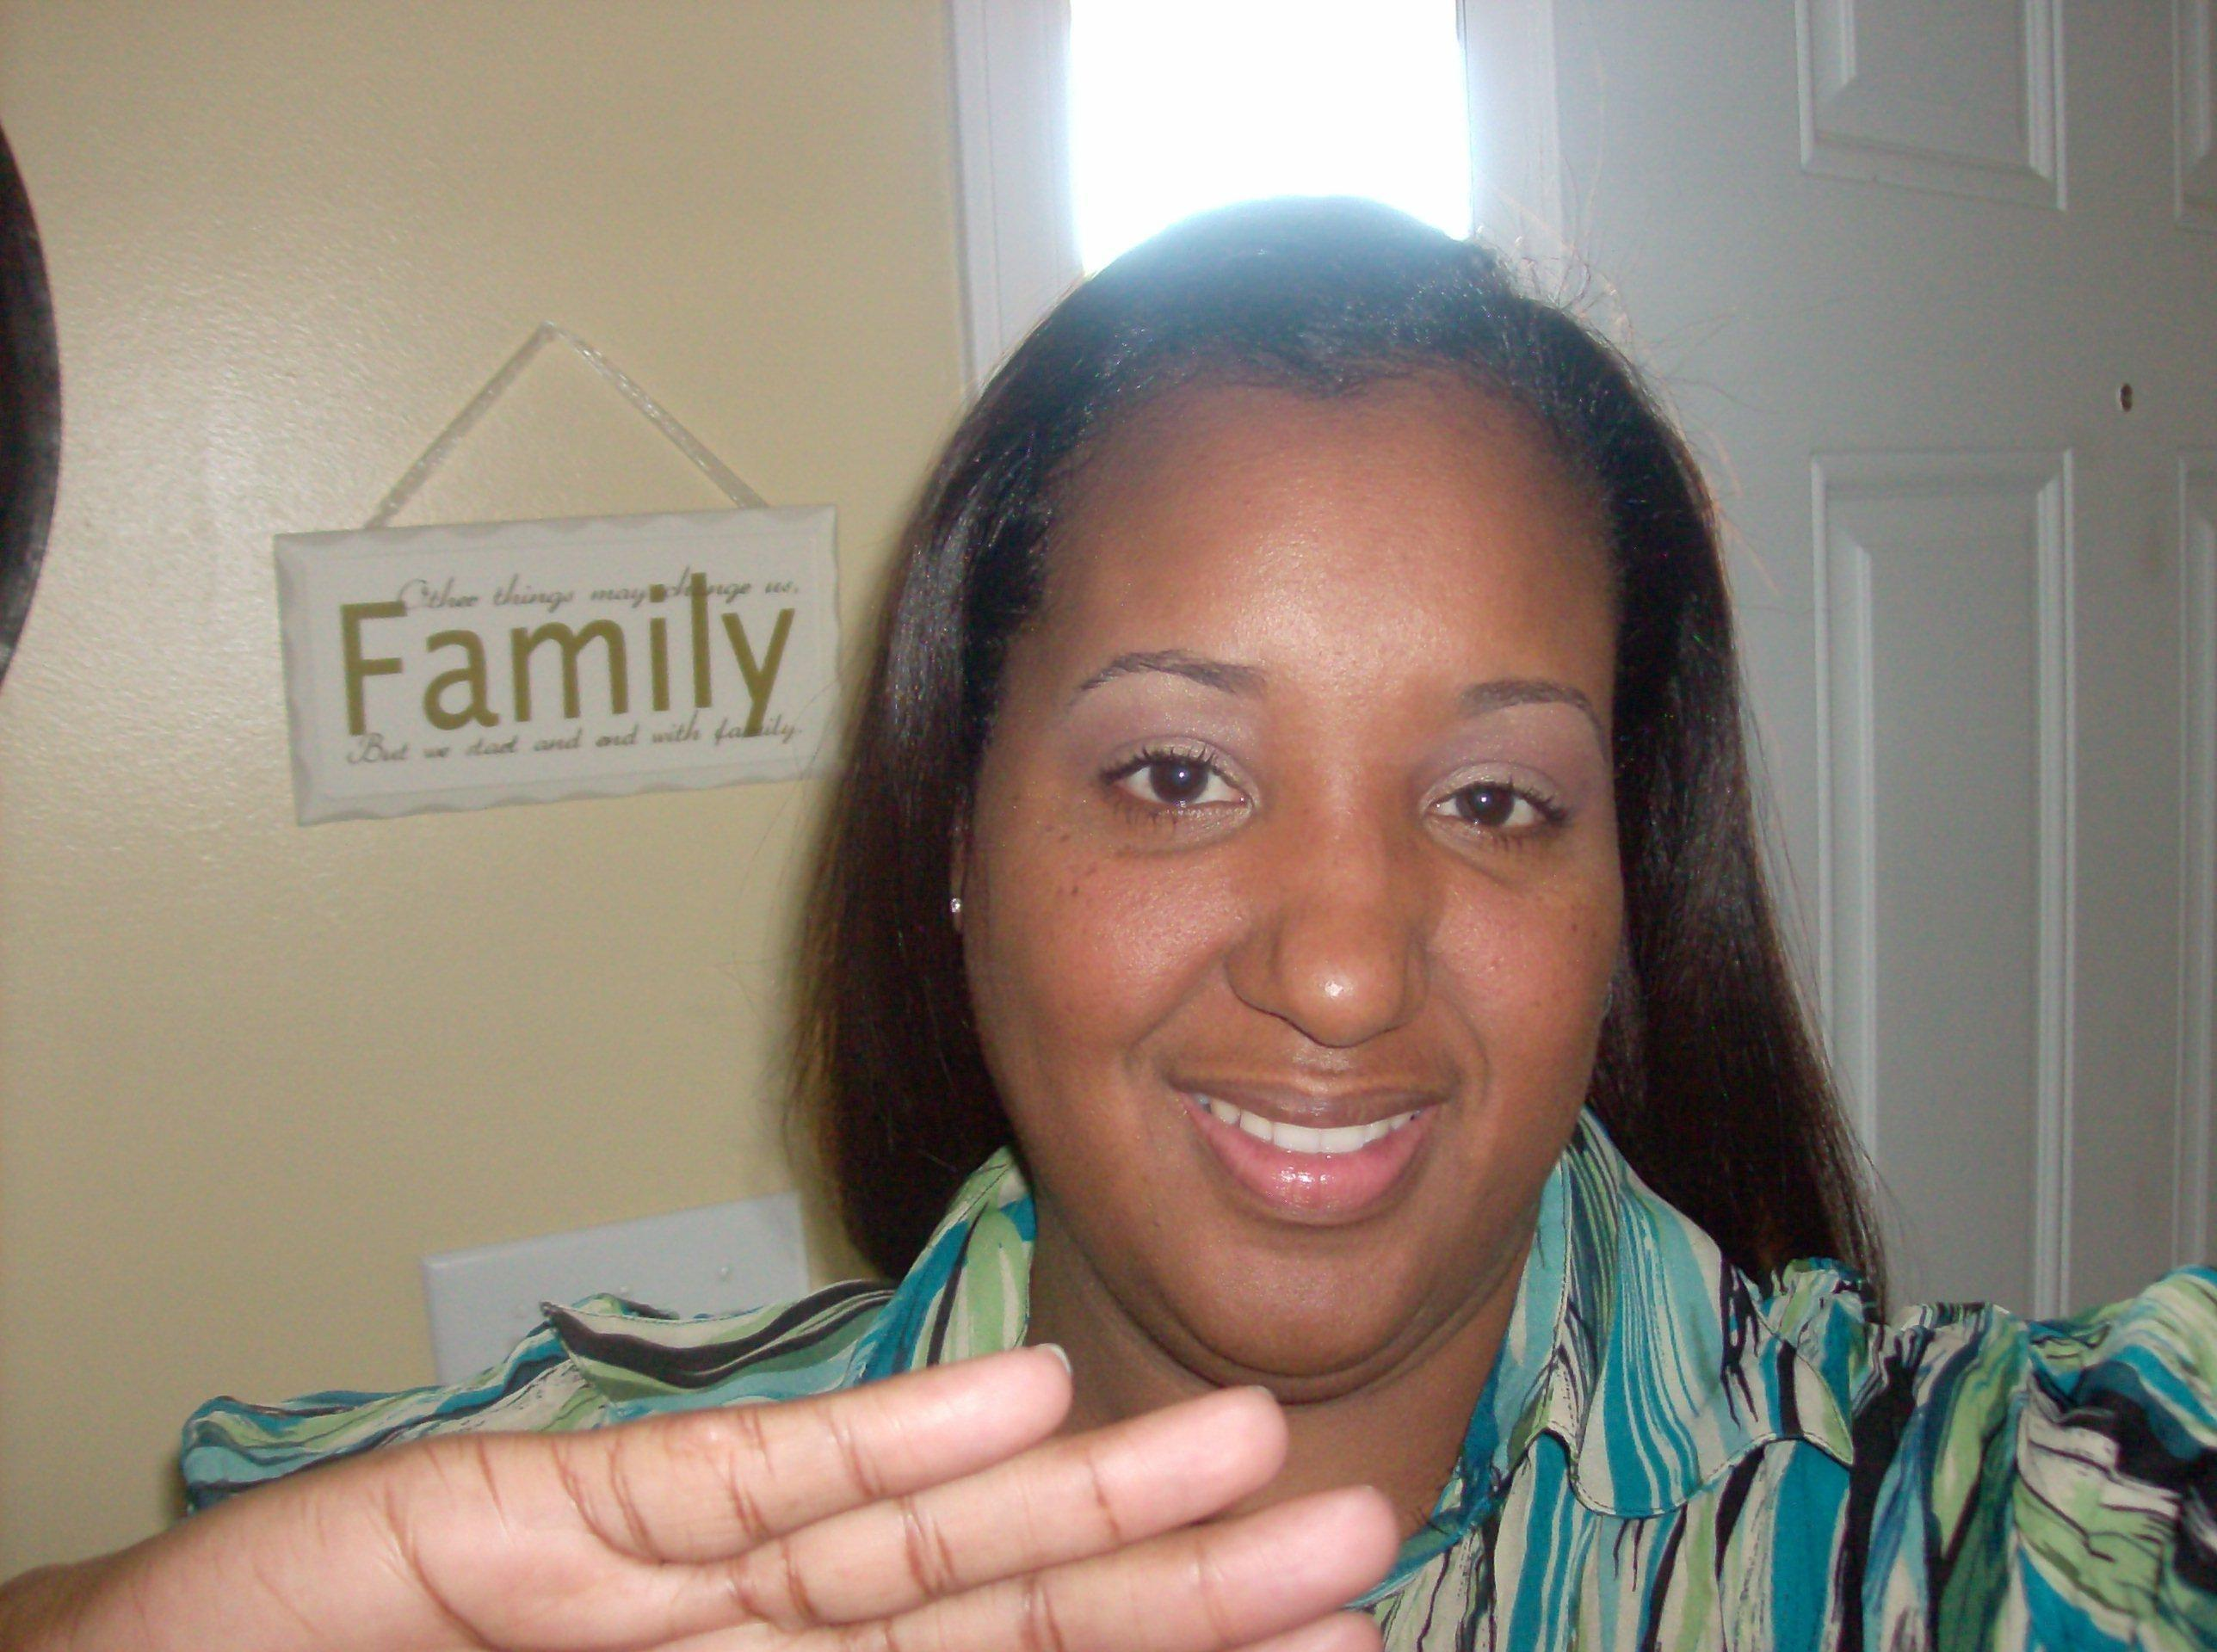 single women in fort bragg Meet single women in fort bragg interested in meeting new people to date on zoosk over 30 million single people are using zoosk to find people to date.